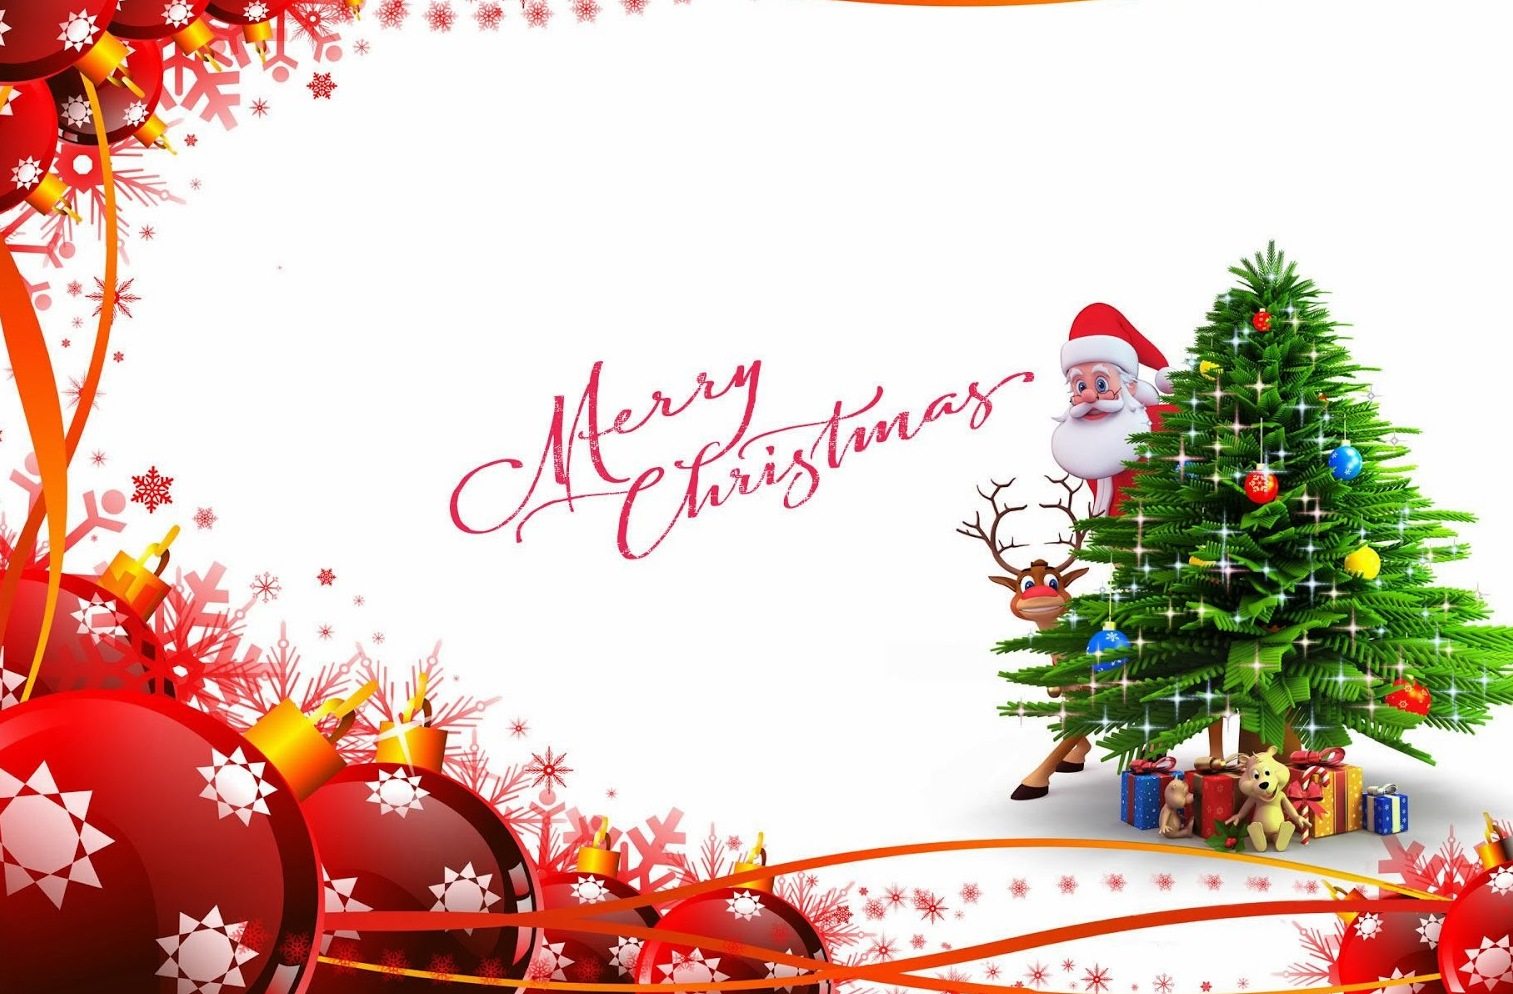 merry christmas hd wallpapers | merry christmas images | christmas